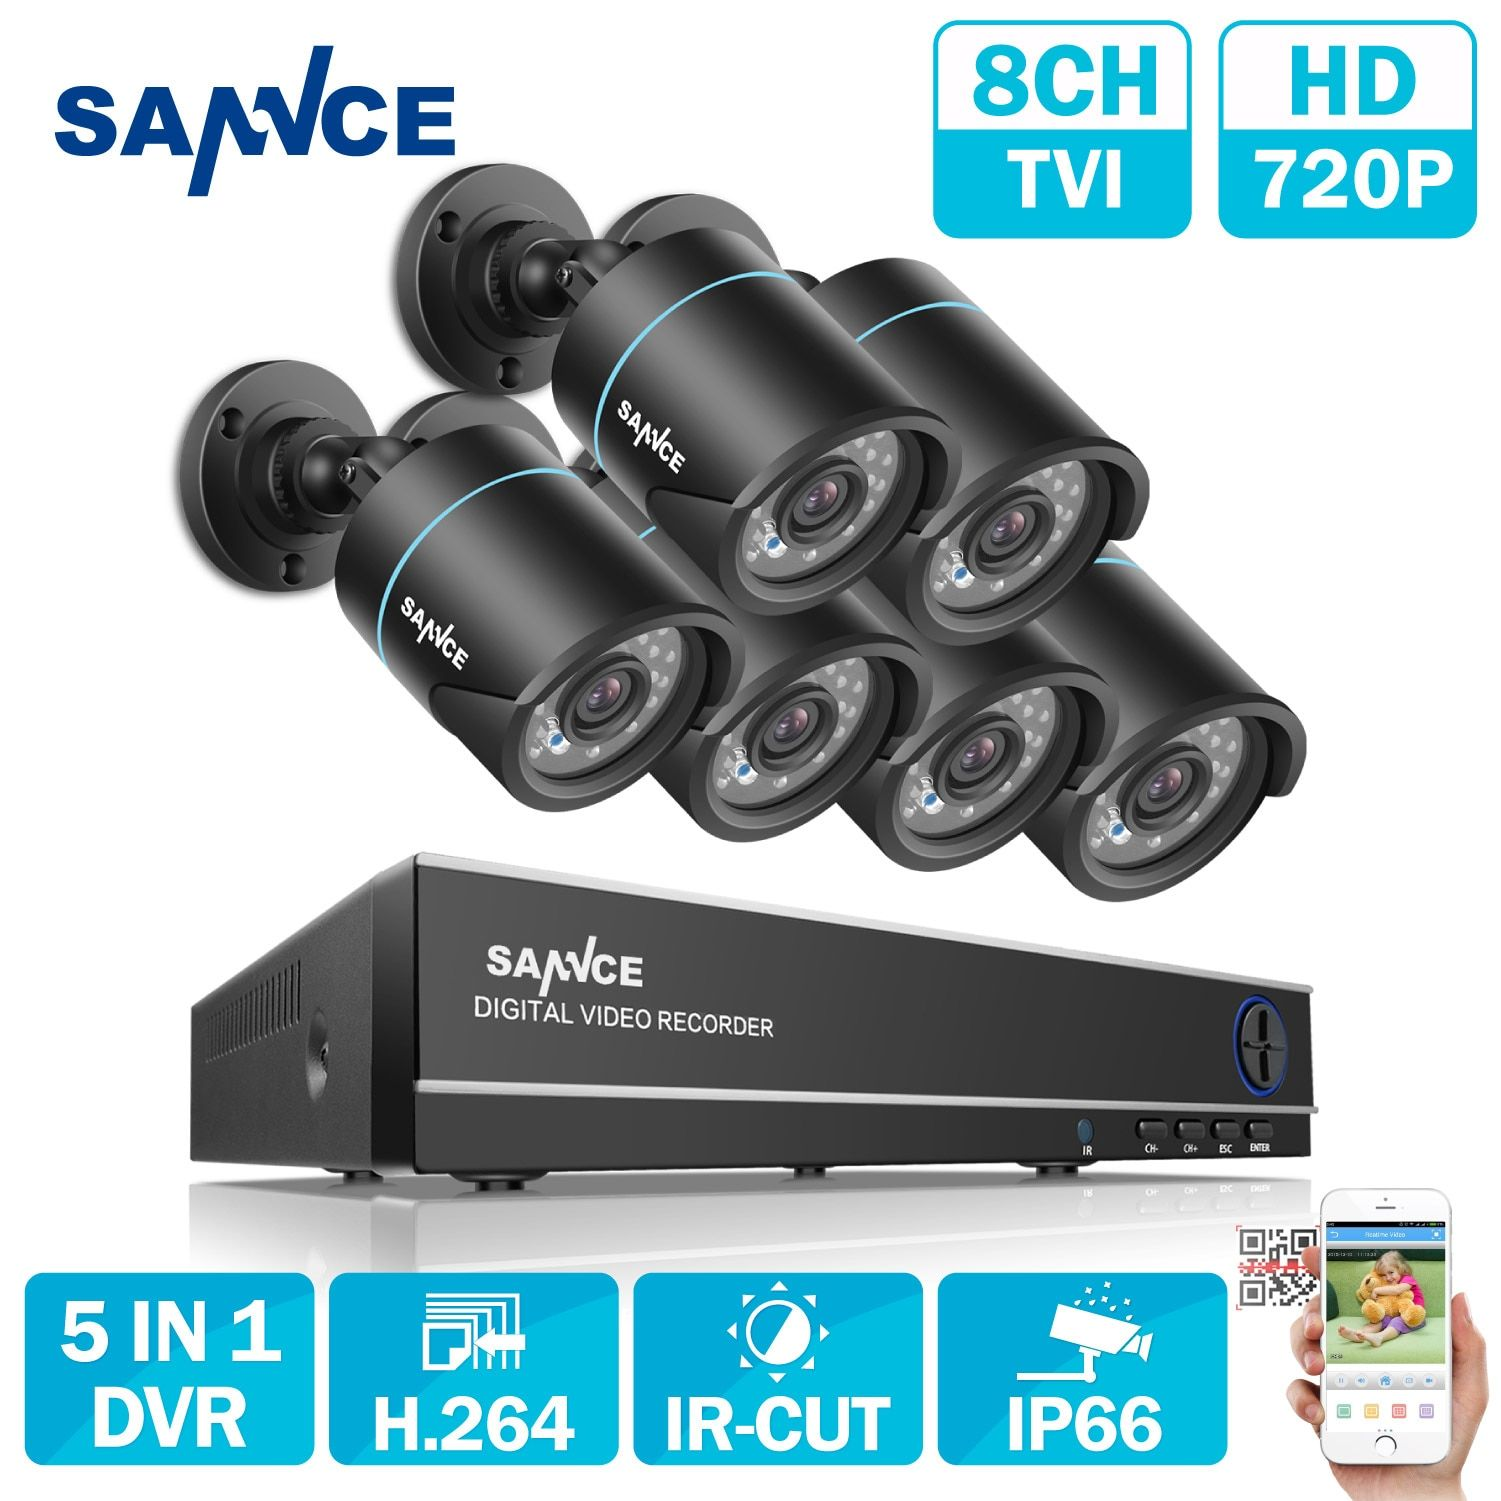 SANNCE 8CH  Output Onvif Supported DVR Waterproof 720P 1.0MP Night Vision Camera CCTV System Surveillance Kits With 6 Cameras